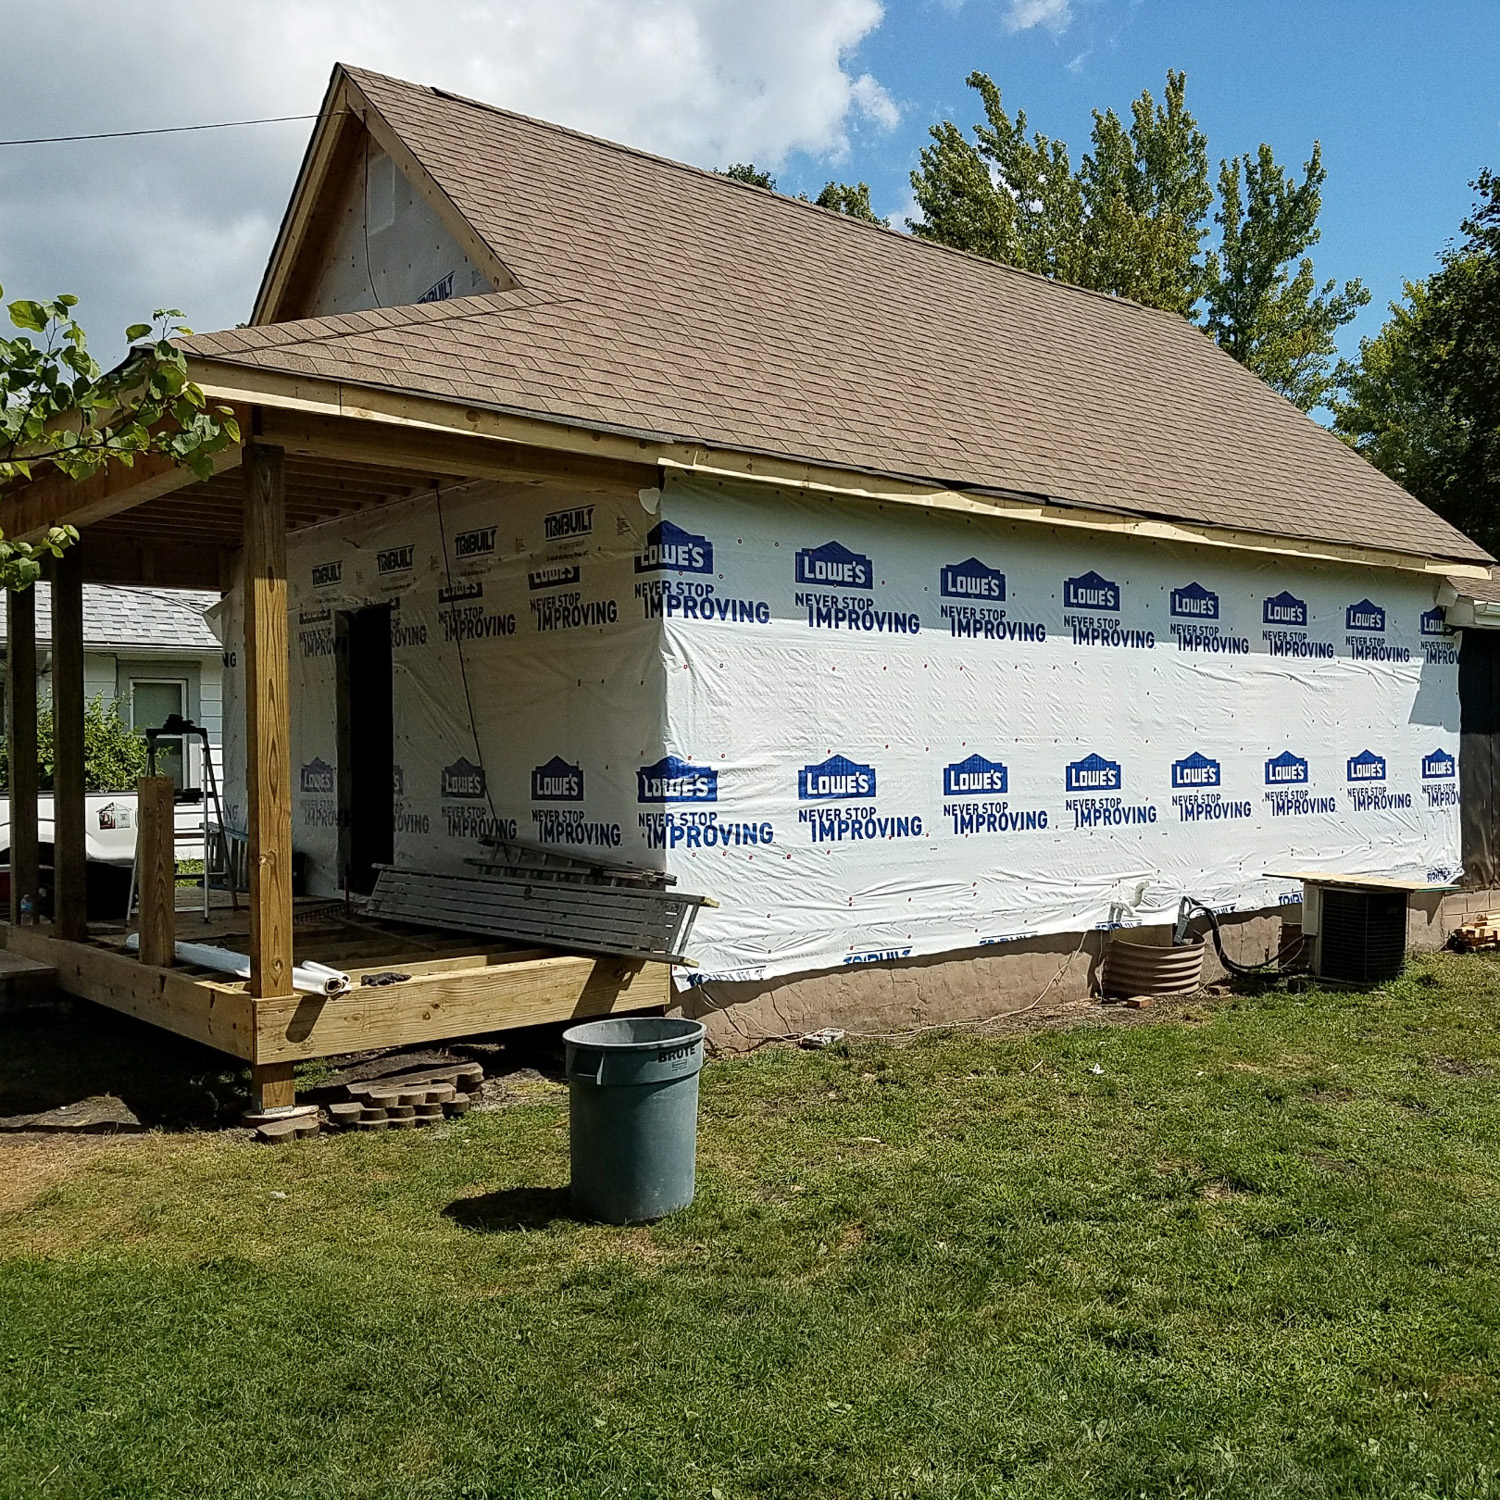 house during wind damage restoration process. House framed, new roof installed, no siding yet, during construction.